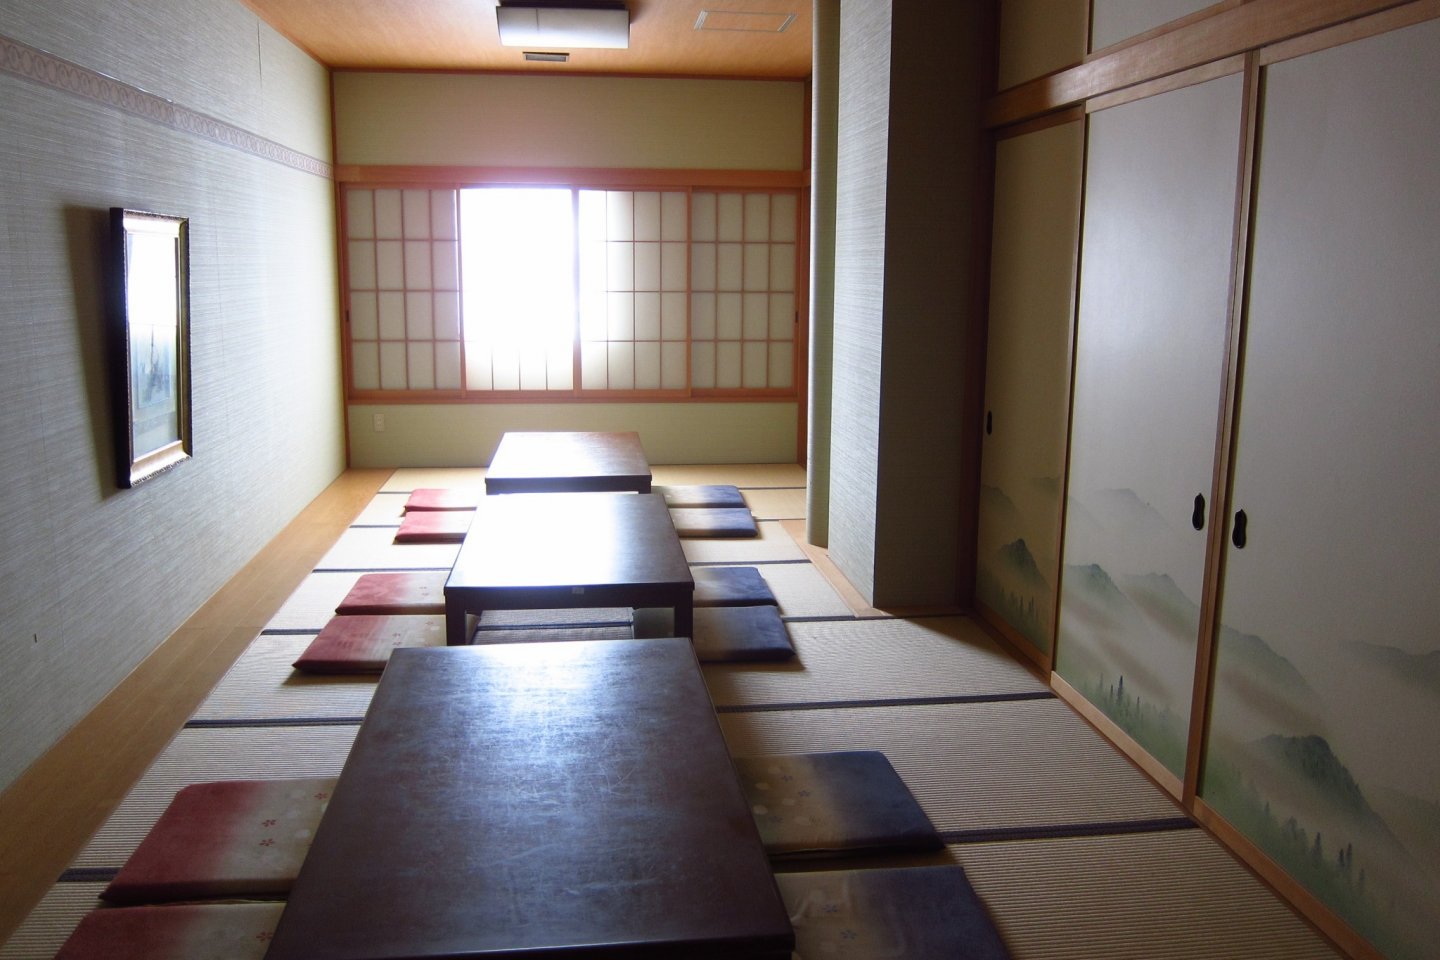 Japanese style conference rooms at Hotel Grantia Akita Spa Resort